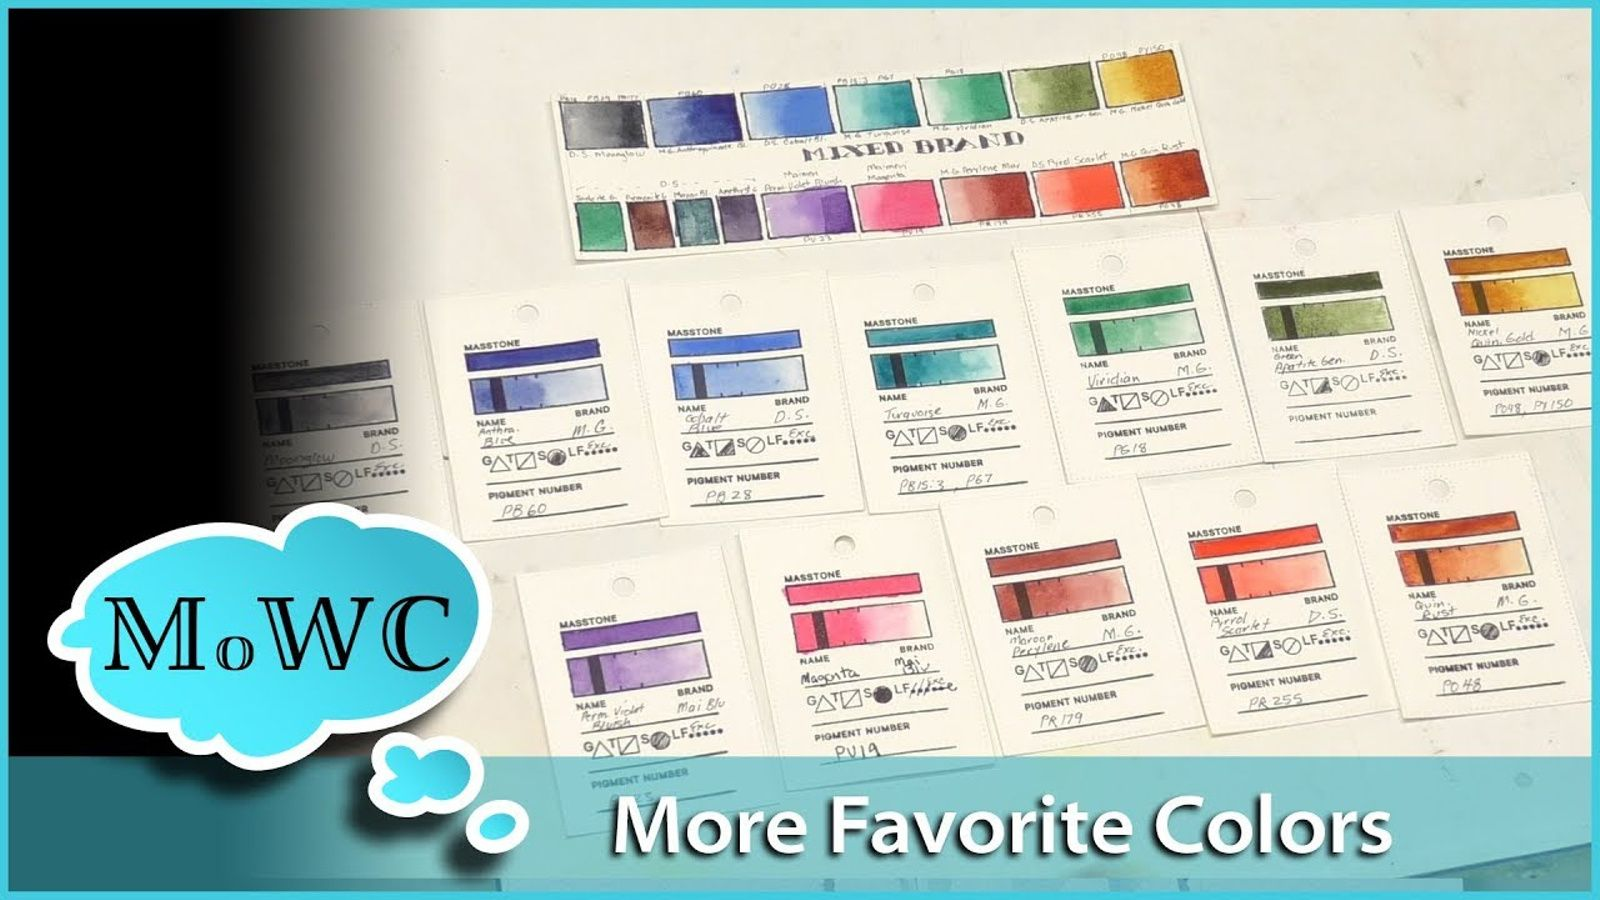 12 More Colors I Love Awesome Selection For Watercolor Landscape